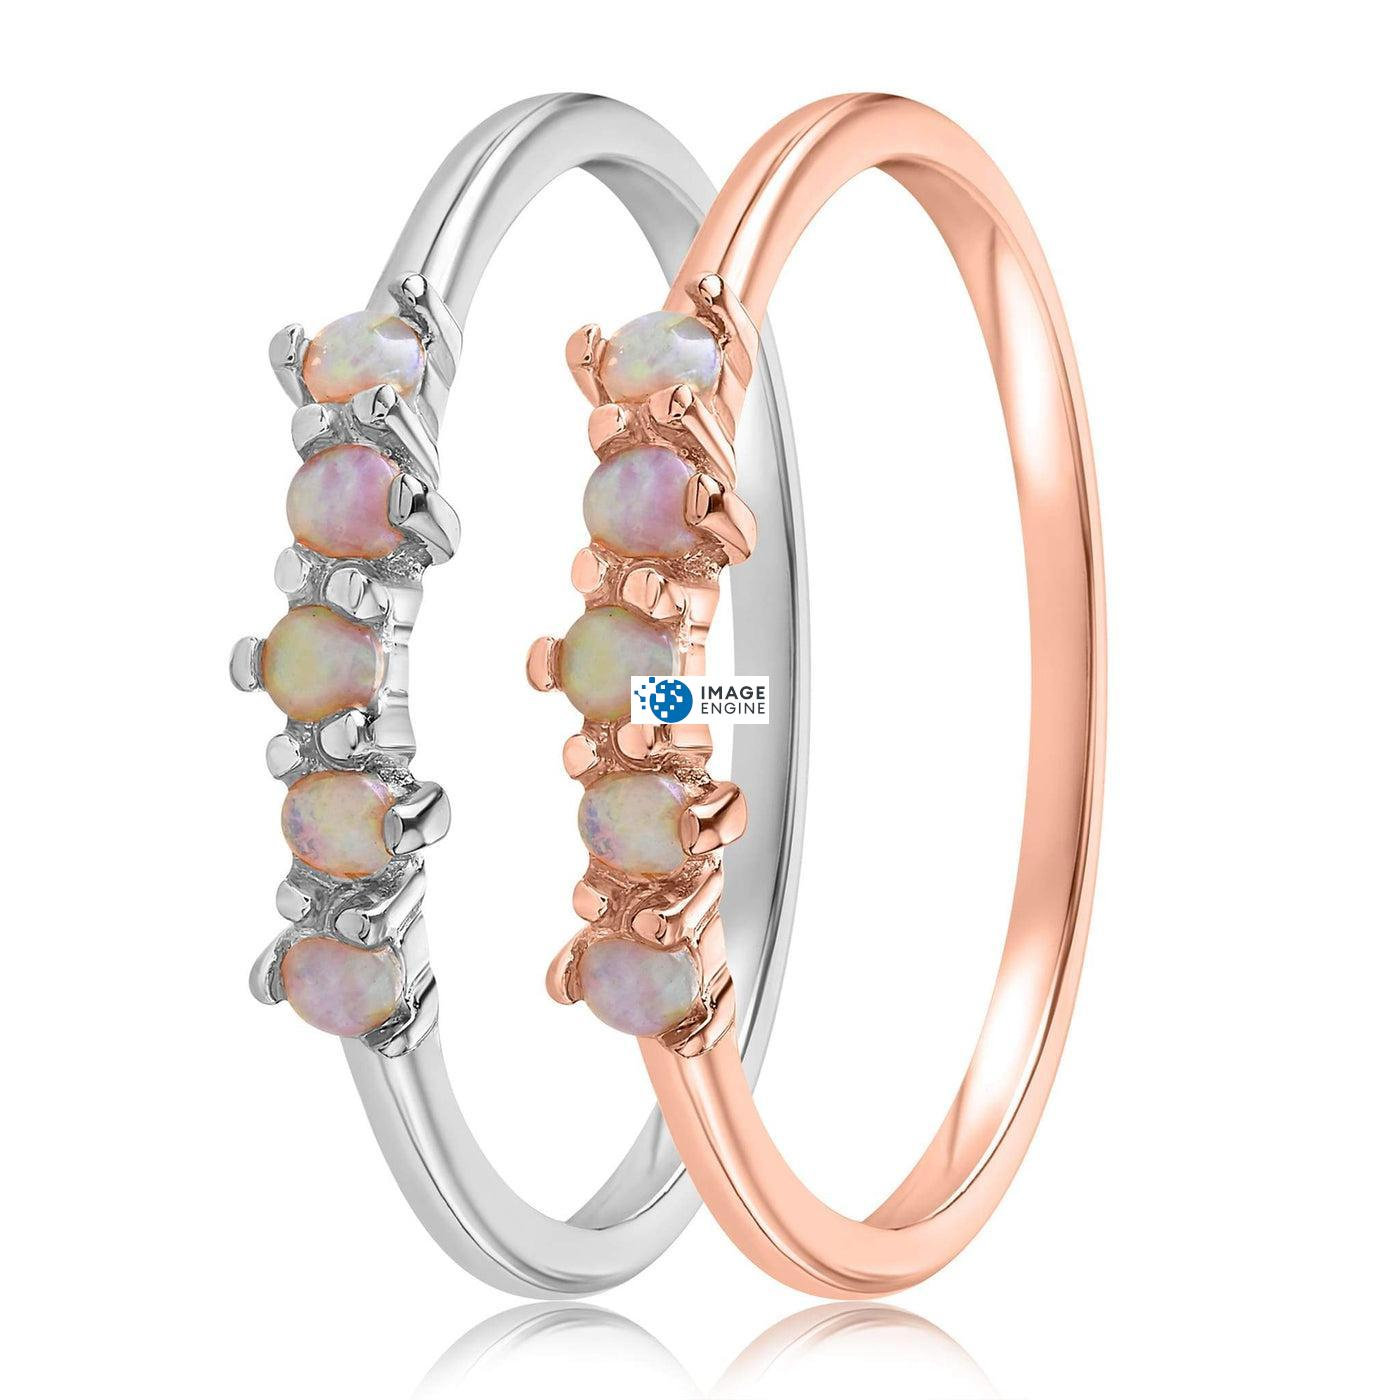 Samantha Simple Dots 5 Opal Ring - Side by Side - 925 Sterling Silver and 18K Rose Gold Vermeil